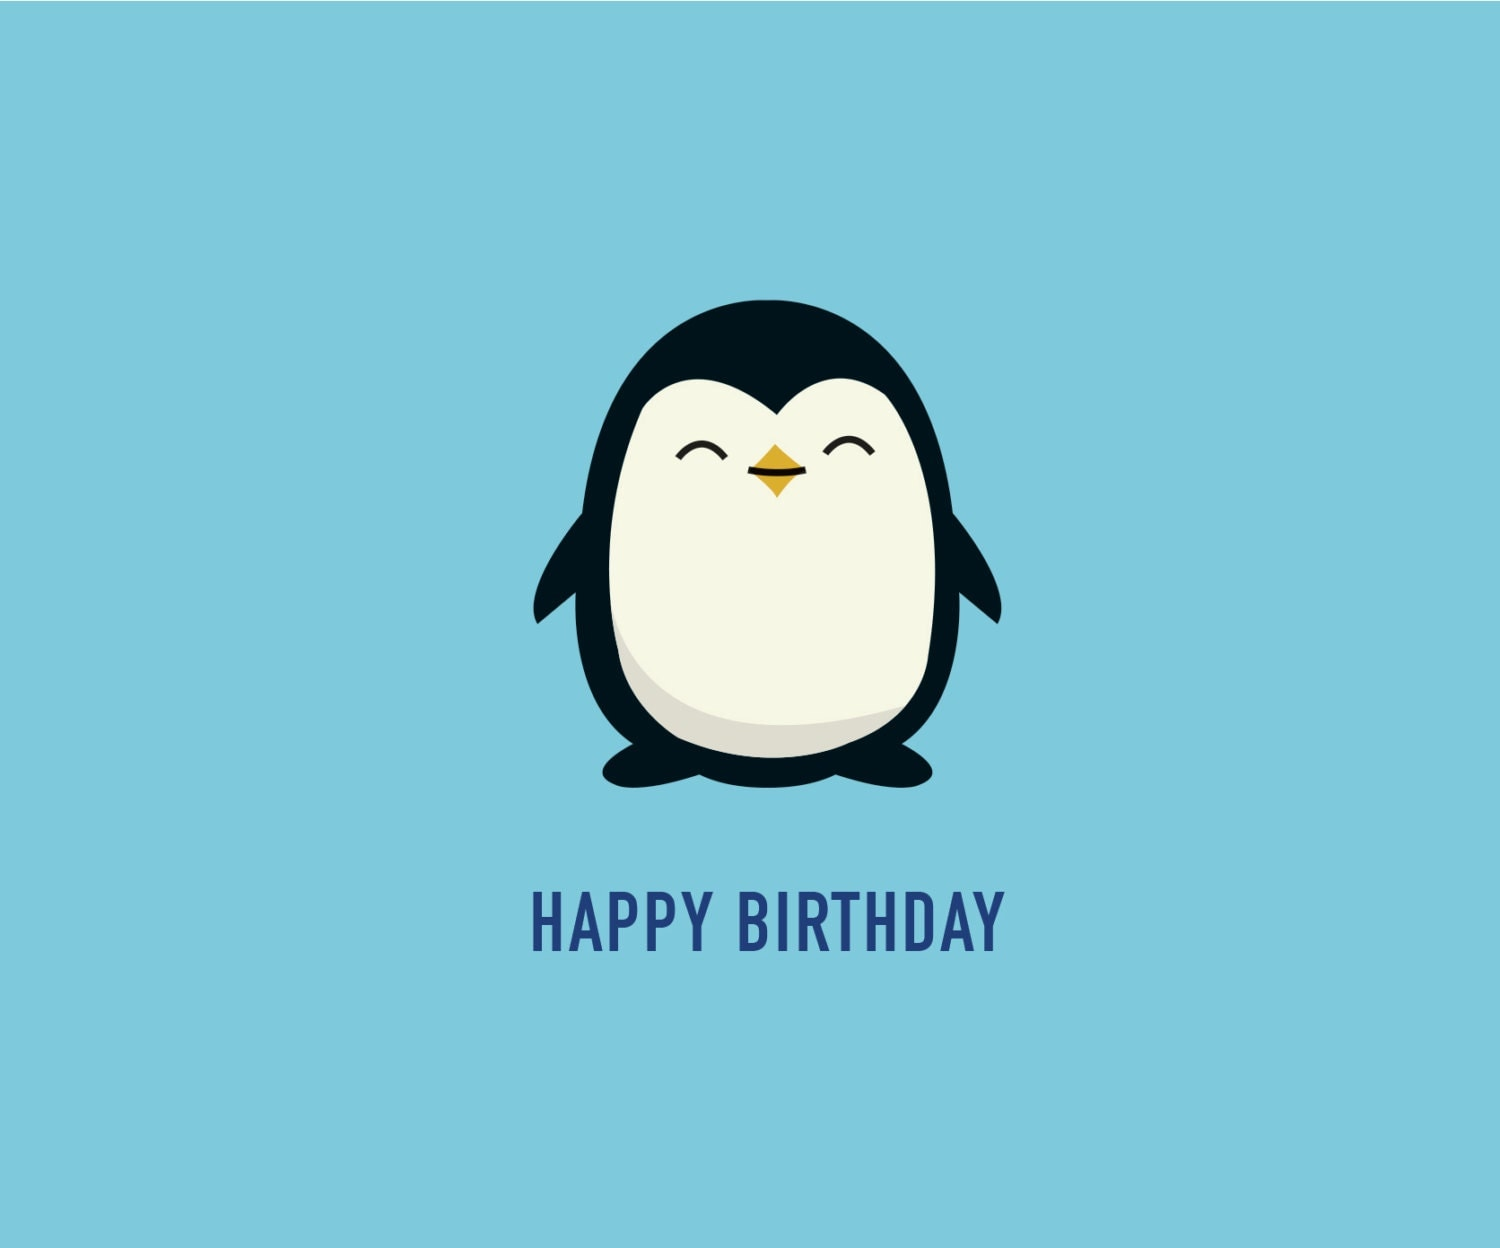 penguin birthday card birthday card funny card cute card, Birthday card